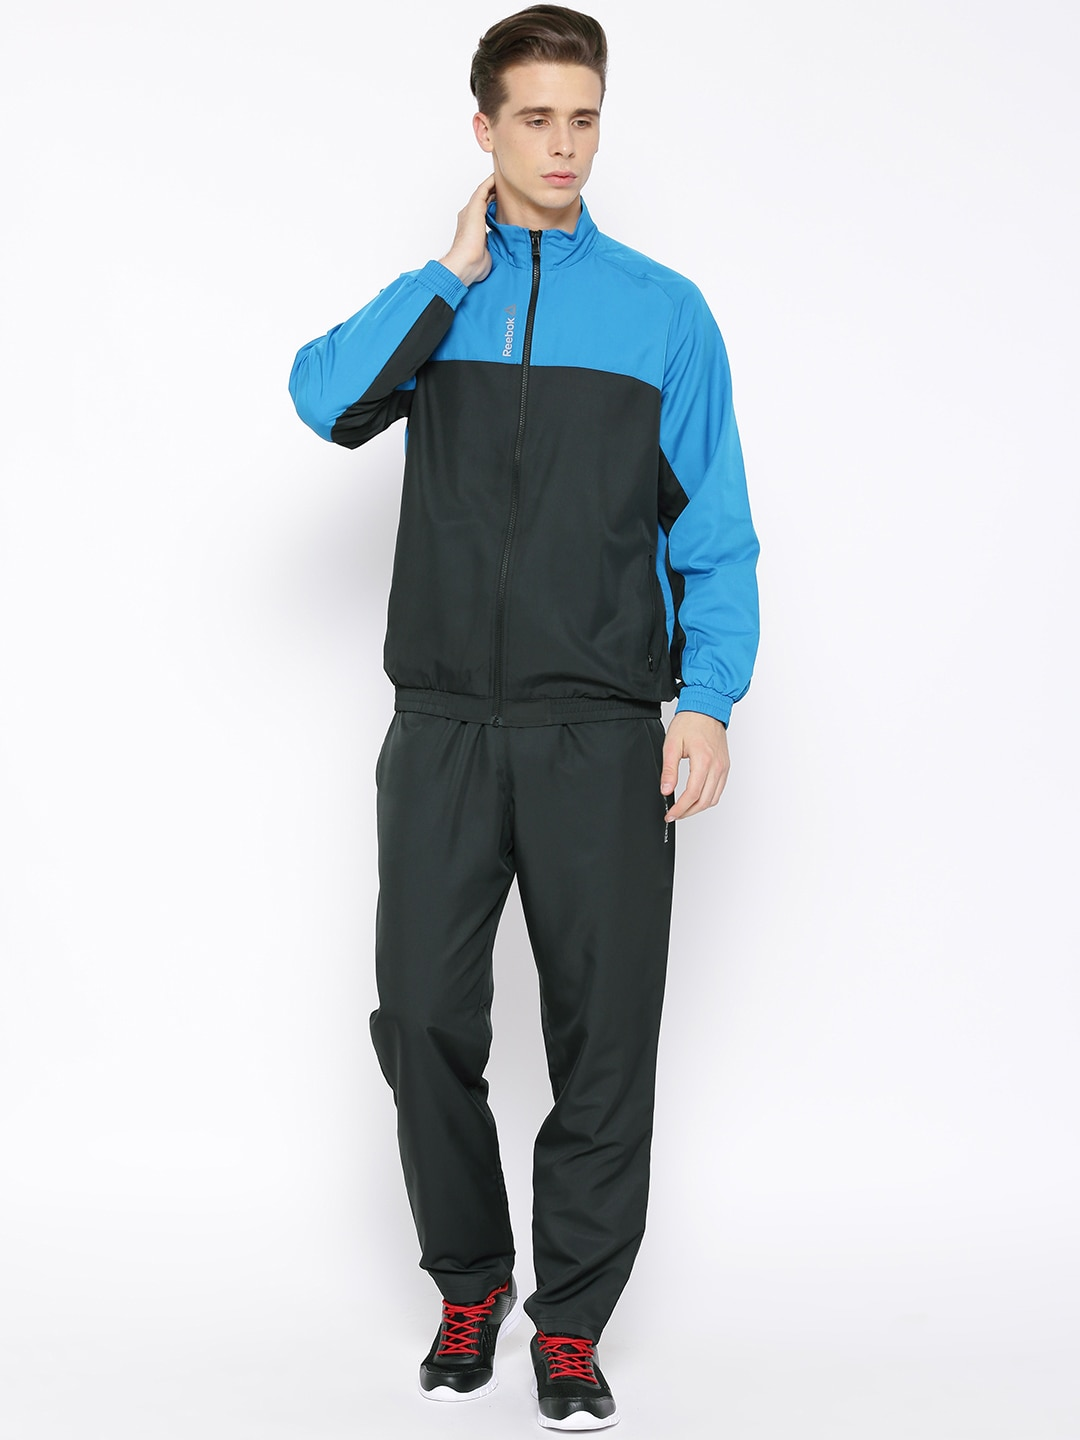 Online shopping sites such as Flipkart not only offer you tracksuits from various reputed brands like Reebok, Nike, Adidas, Fila, Triumph, HRX, Shiv Naresh, Elligator, Club York, Duke, Proline, Lotto, Dazzgear and Puma, but also offer you great discounts on your favourite brands.